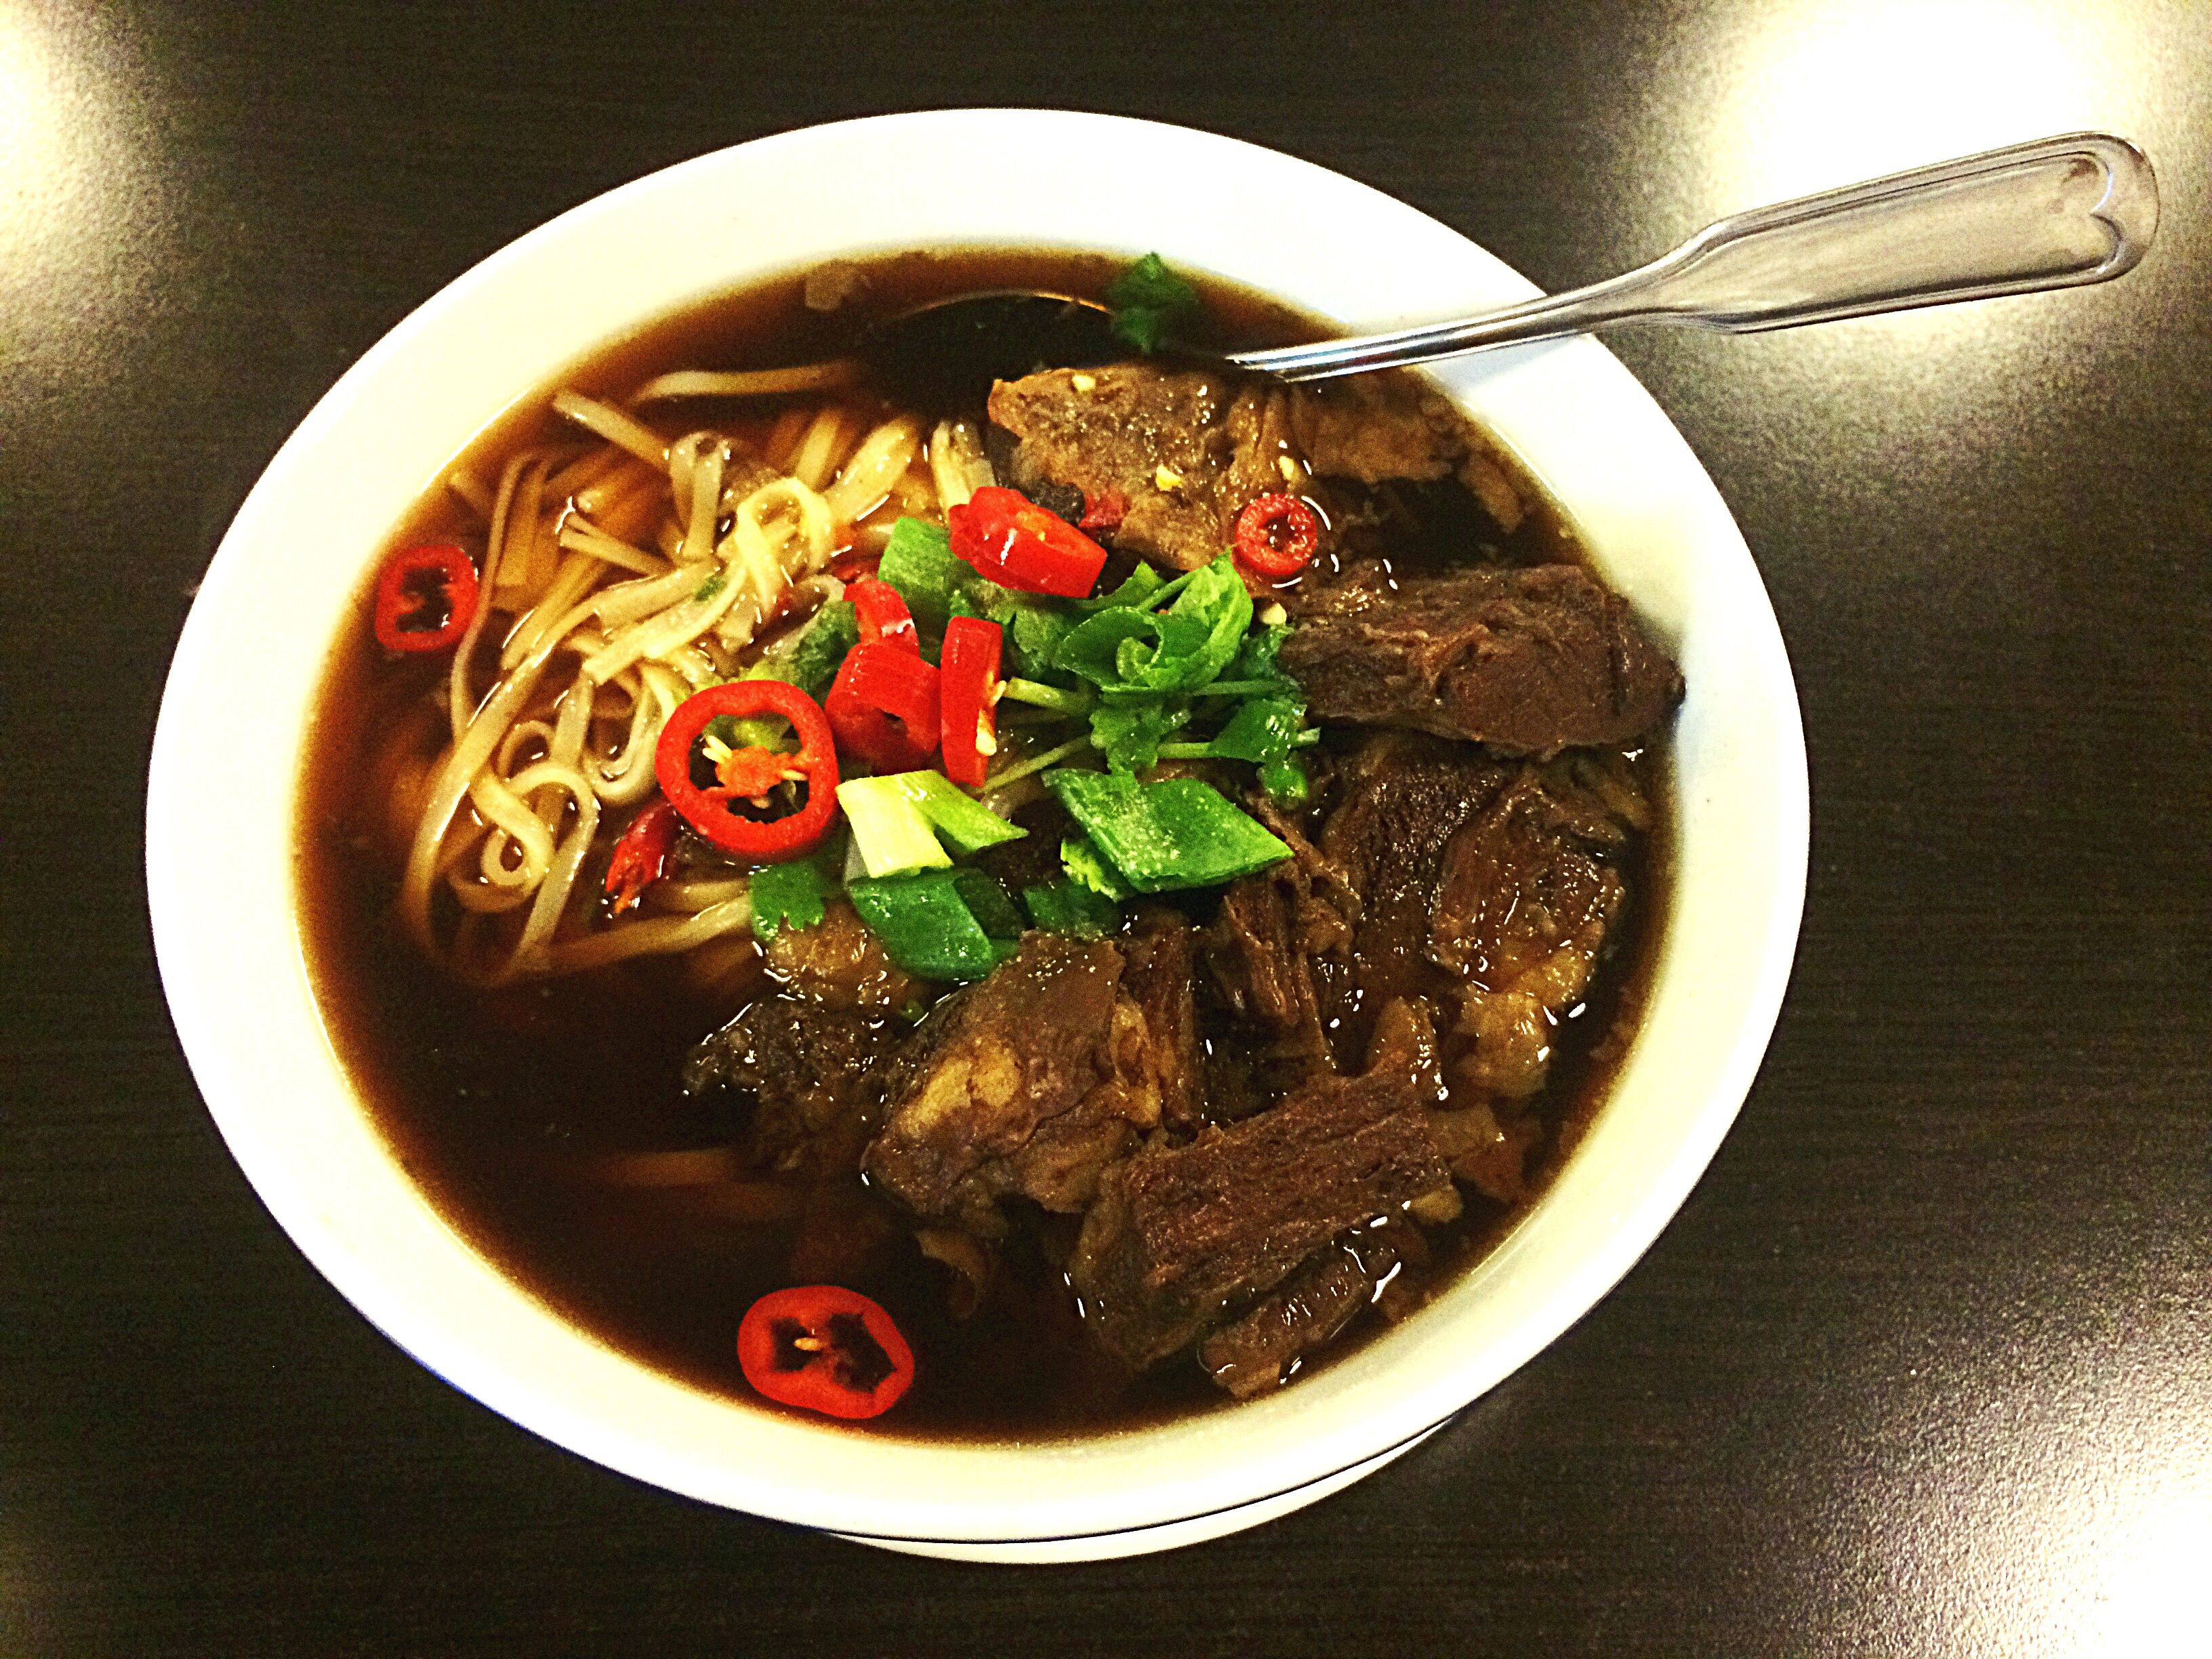 Learn to Make a Phenomenal Pho Dish